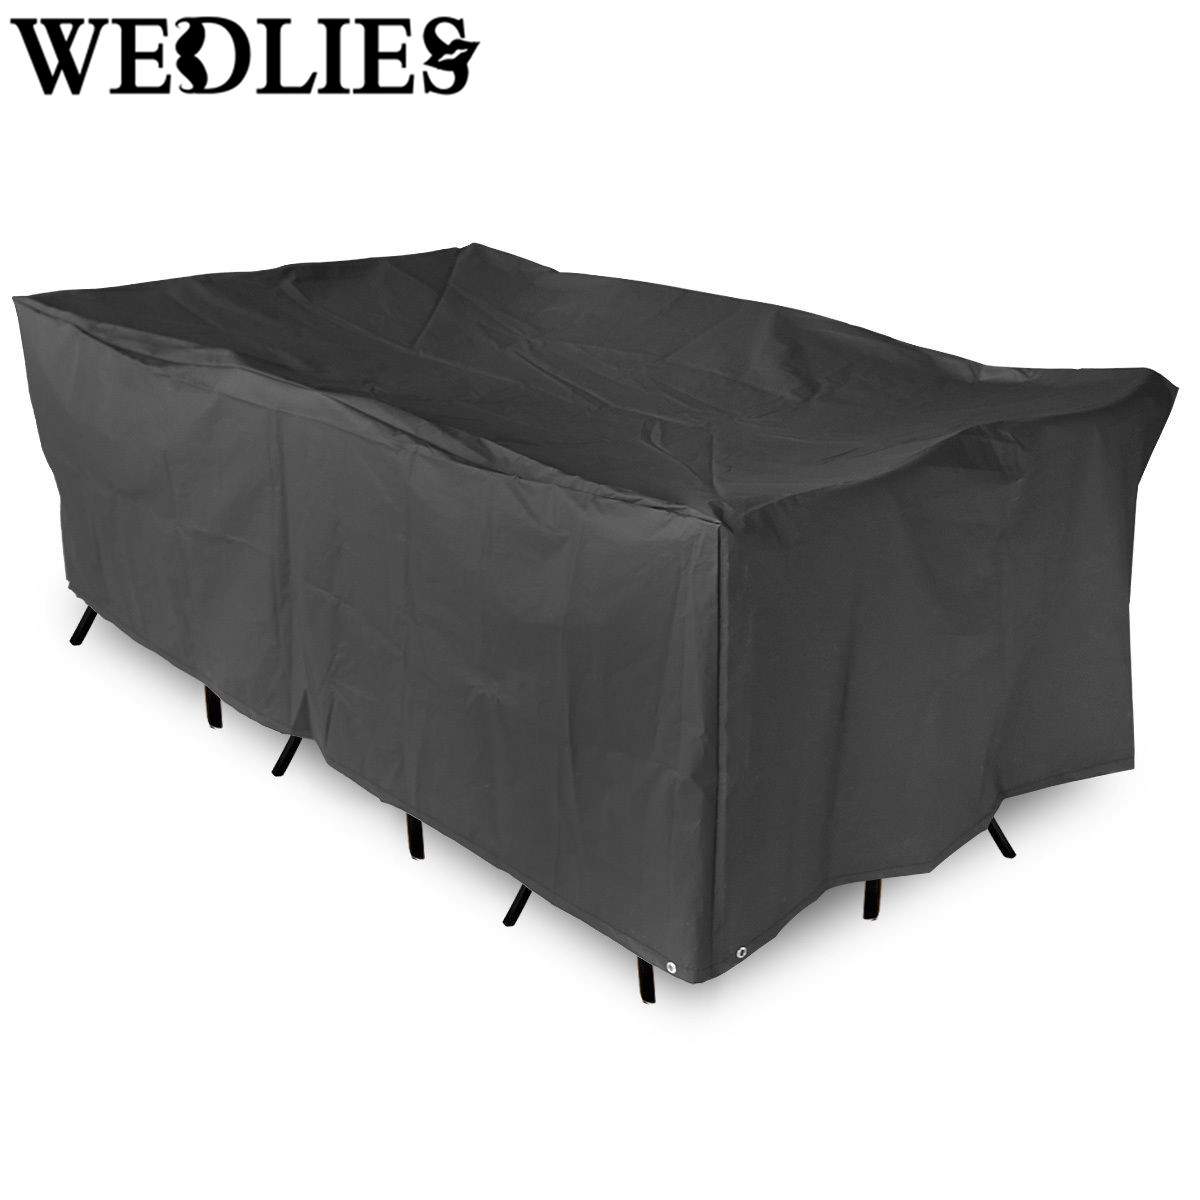 Polyester Garden Patio Table Cover Waterproof Outdoor Furniture Shelter  Dustproof Protective Cover Home Textiles 213X132X74cm